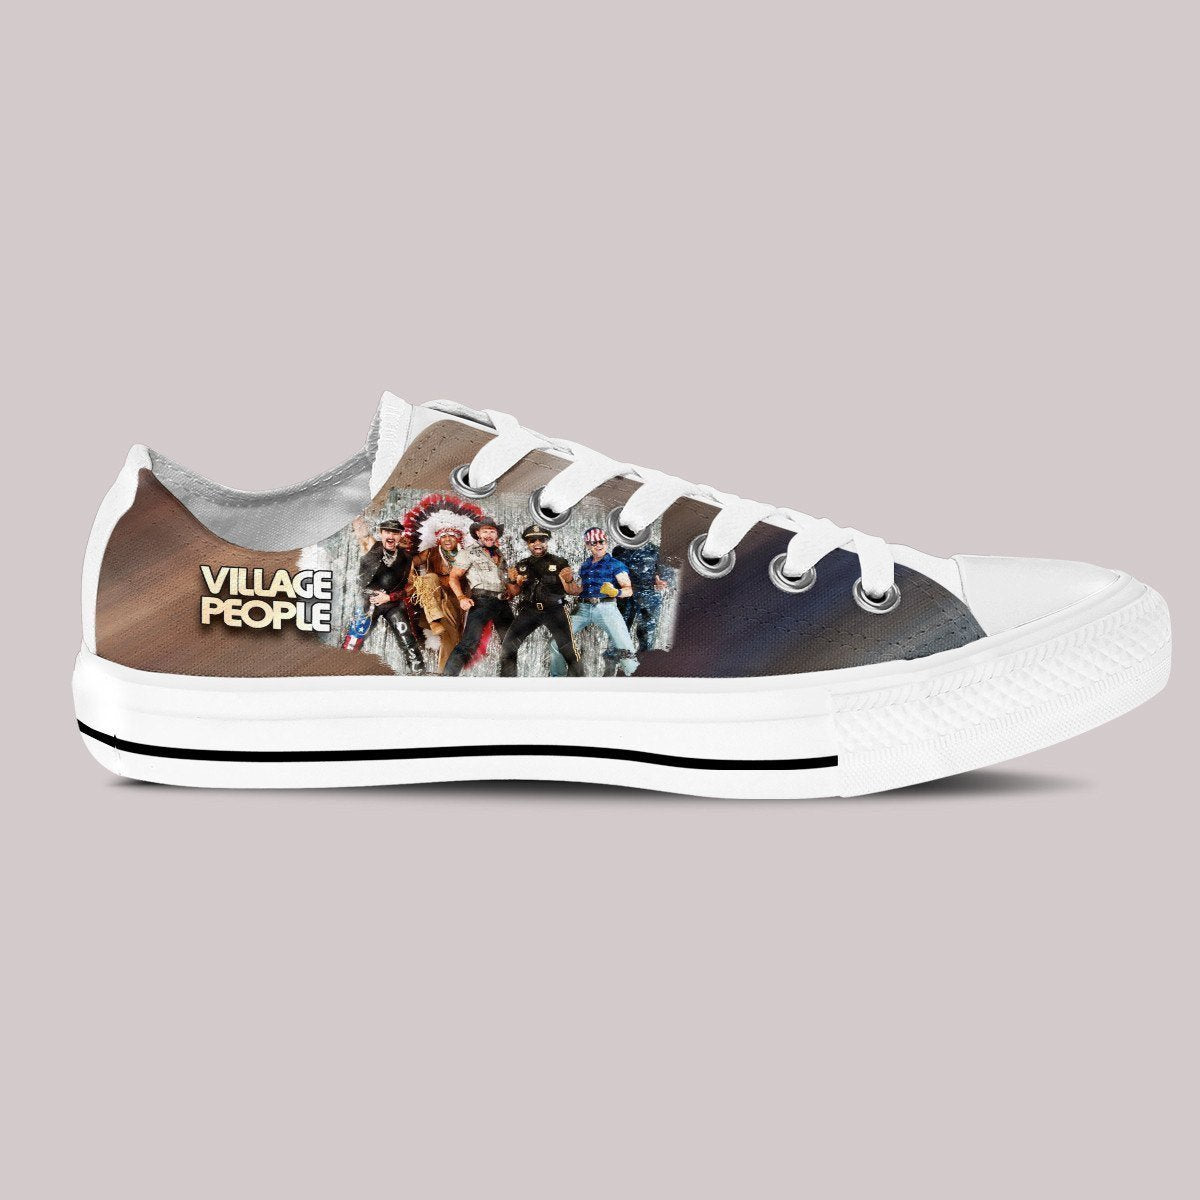 the village people mens low cut sneakers